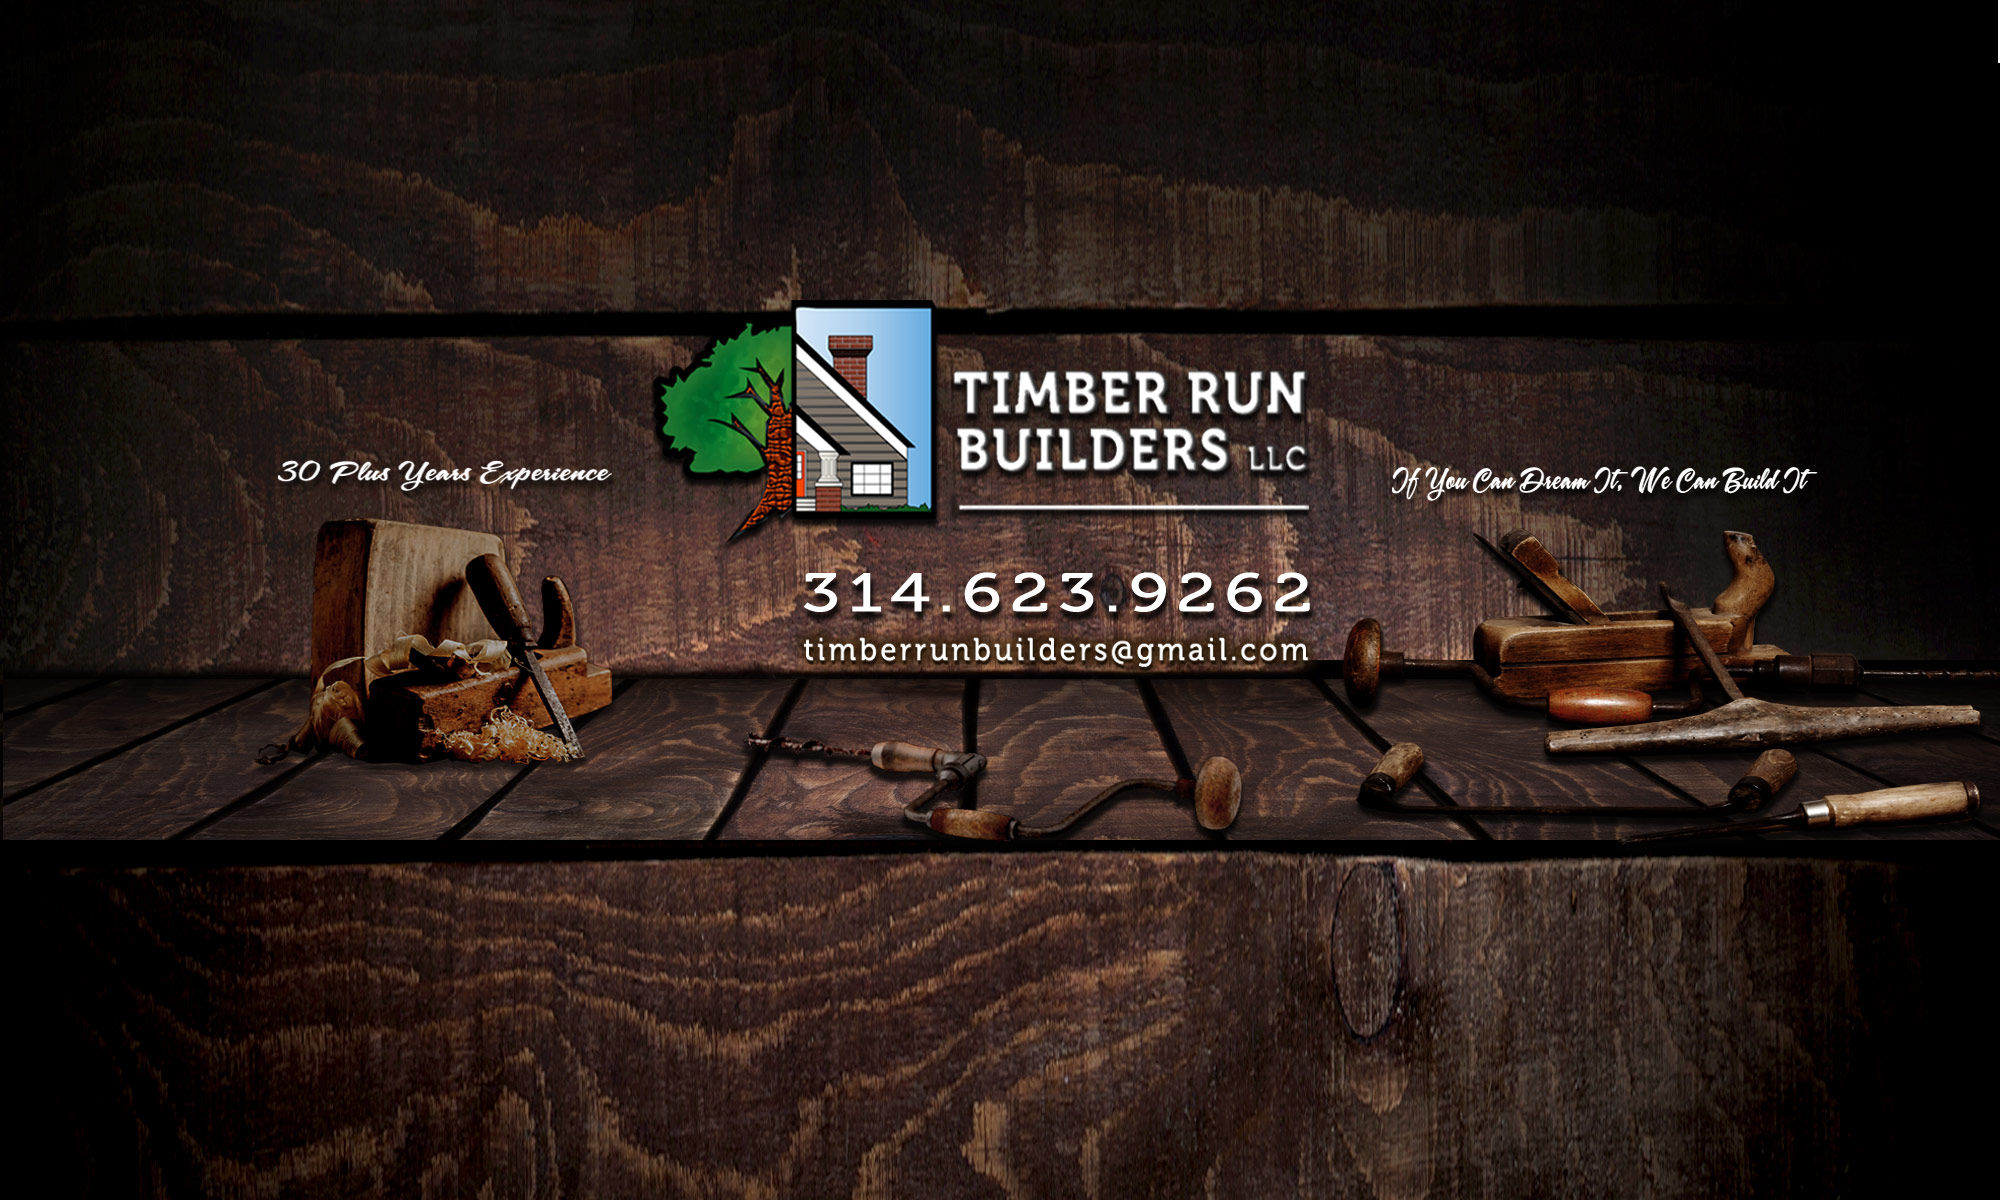 Timber Run Builders LLC